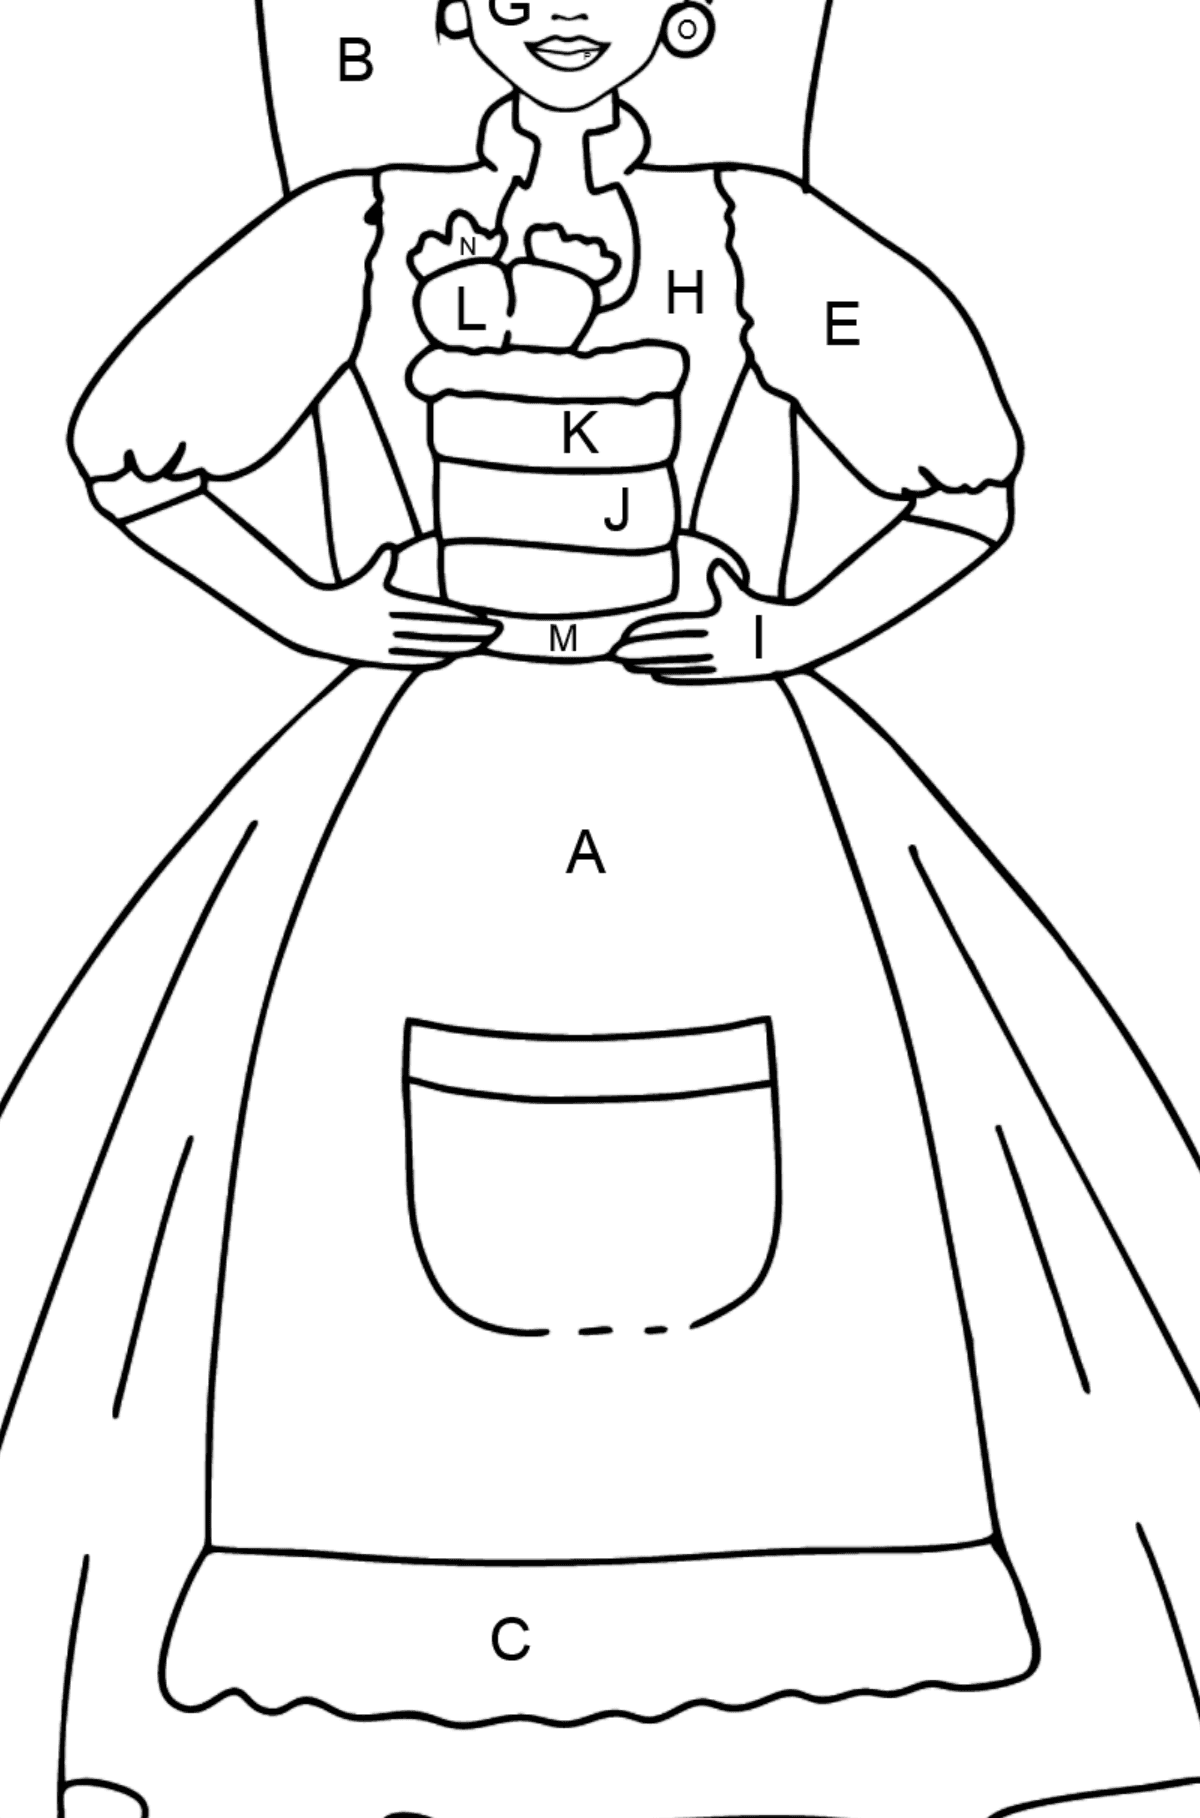 Barbie Doll and Cake coloring page - Coloring by Letters for Kids